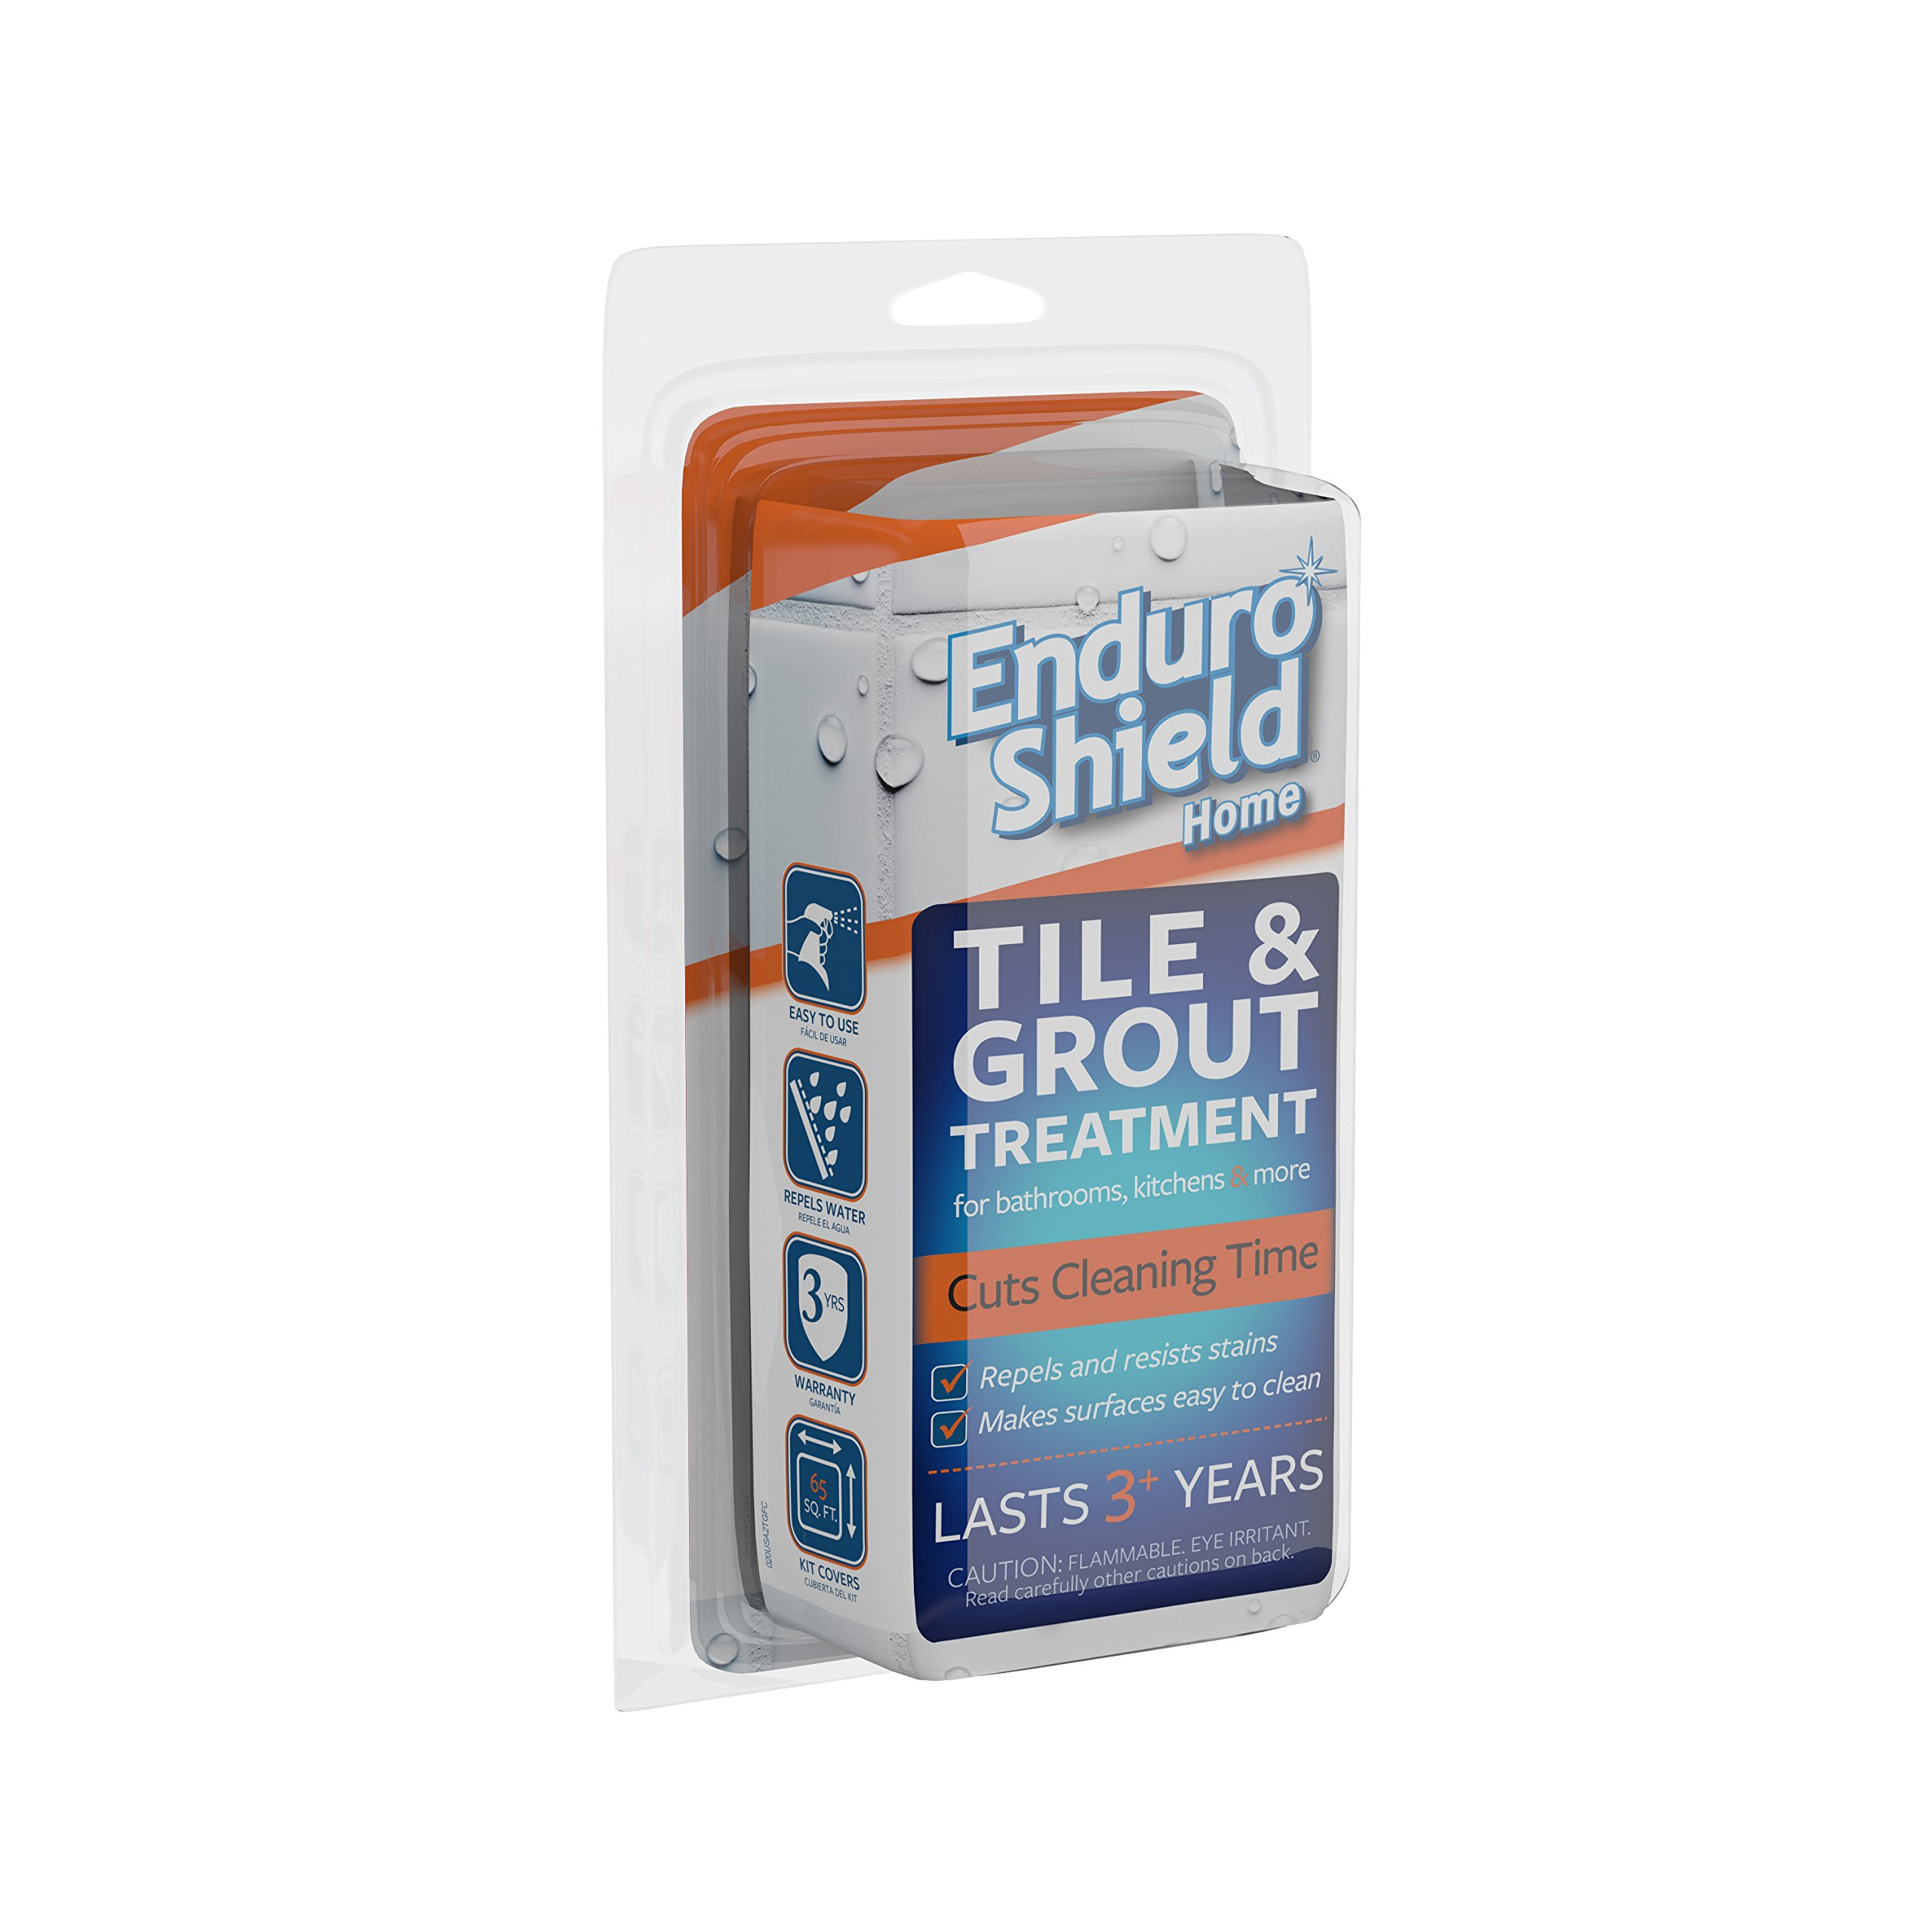 EnduroShield Home Tile Treatment 4.2 oz. Kit for Tile / Grout & More - One Application Makes Surfaces Easy to Clean for 3 Years by Enduroshield